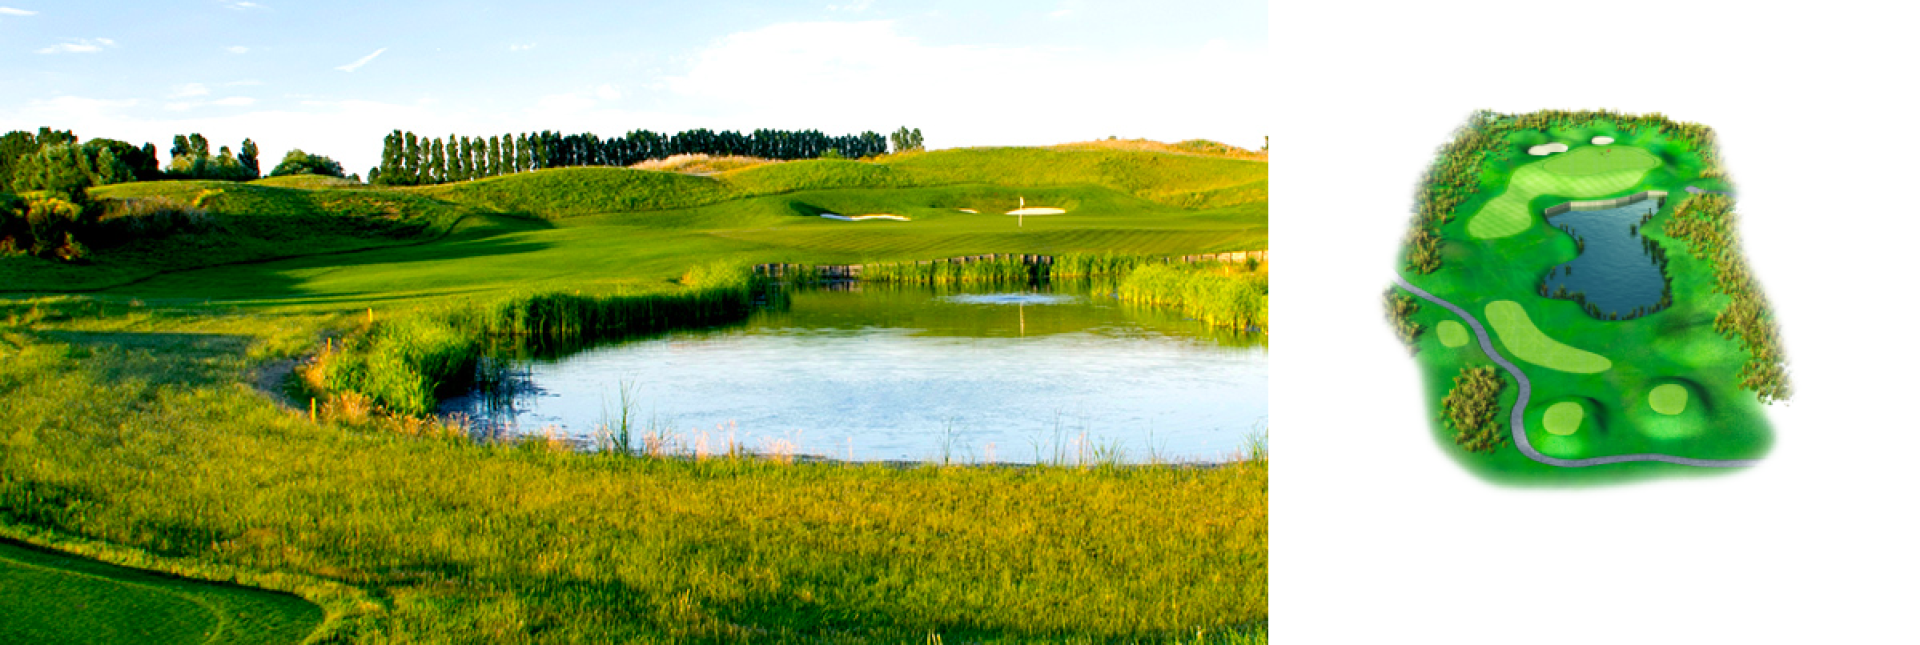 Le Golf National hole pictures11.png